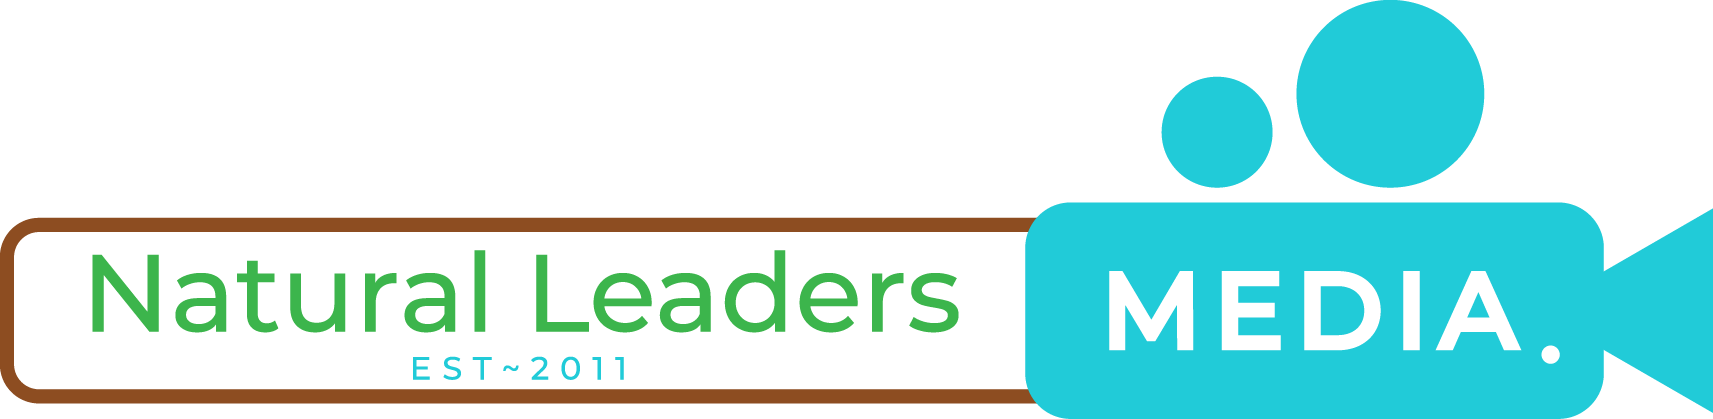 Natural Leaders Media